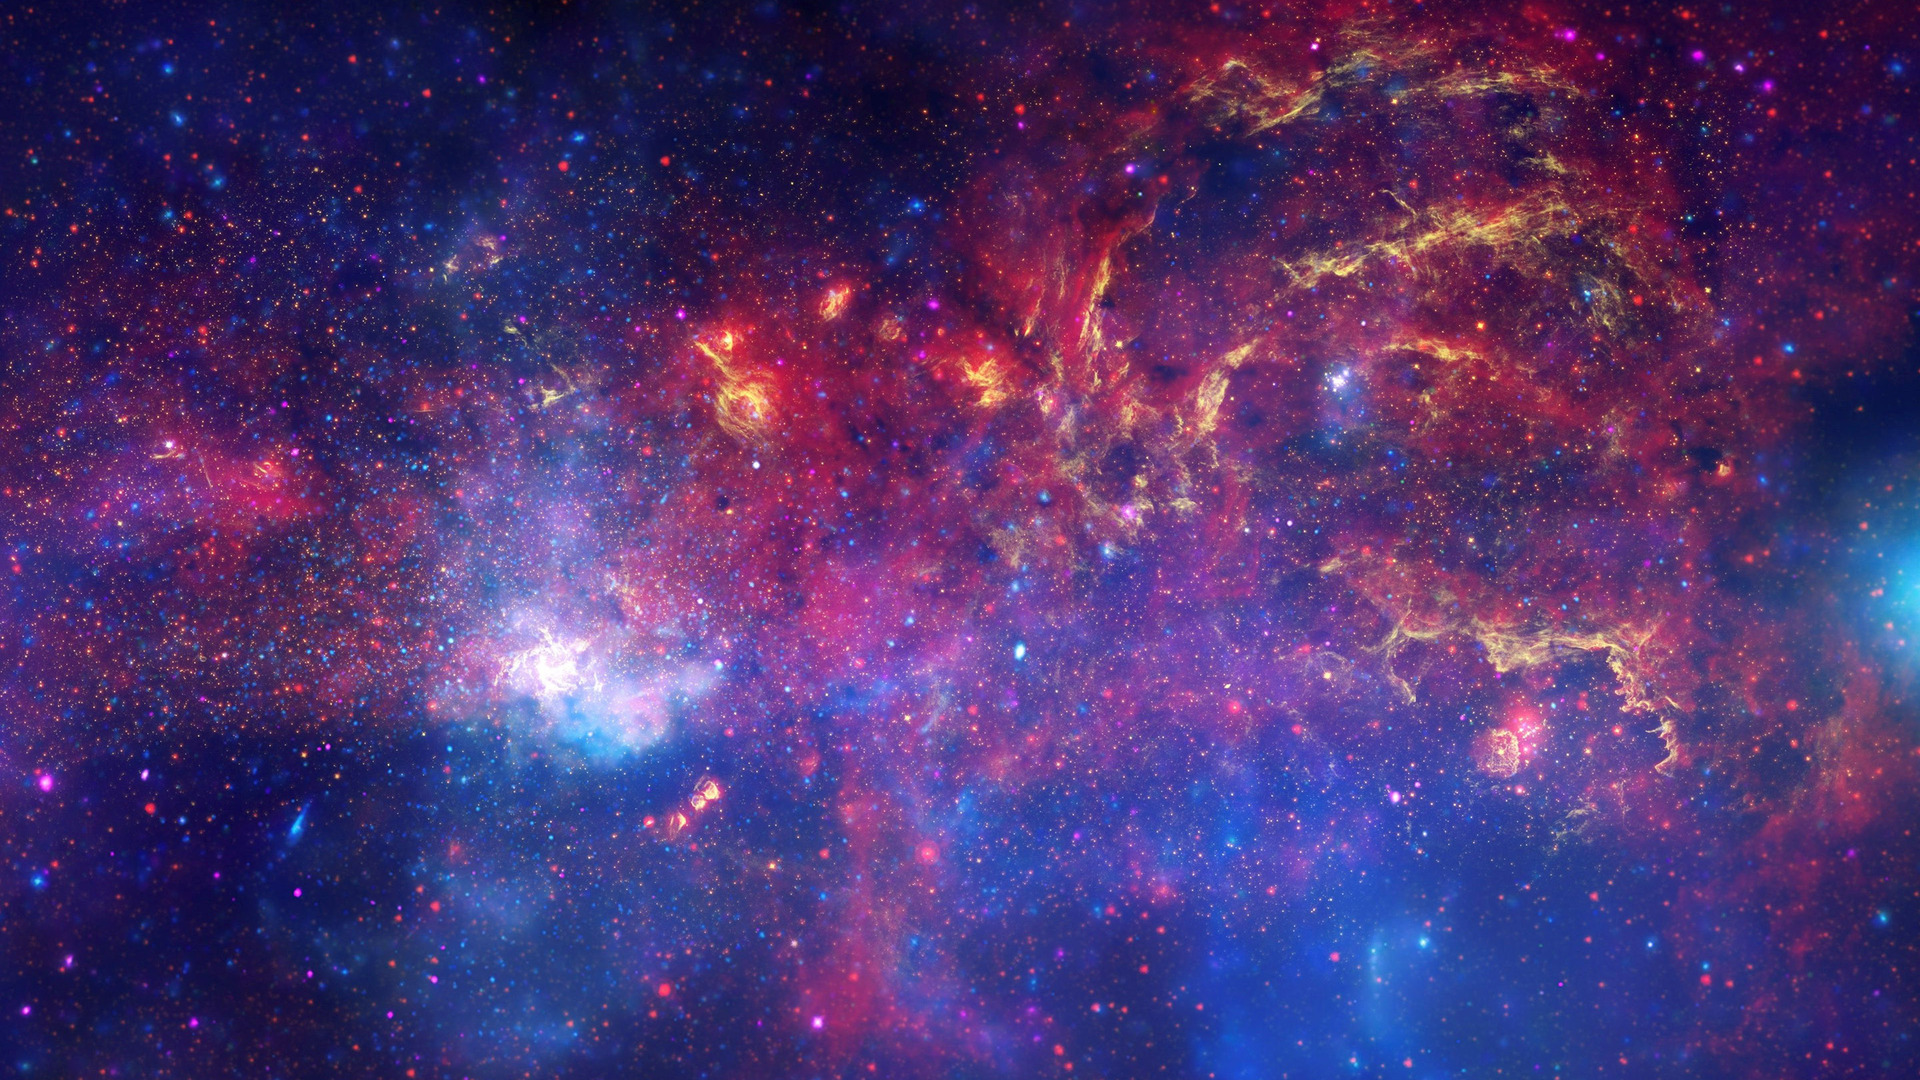 Galaxy HD Wallpapers 1080p - WallpaperSafari